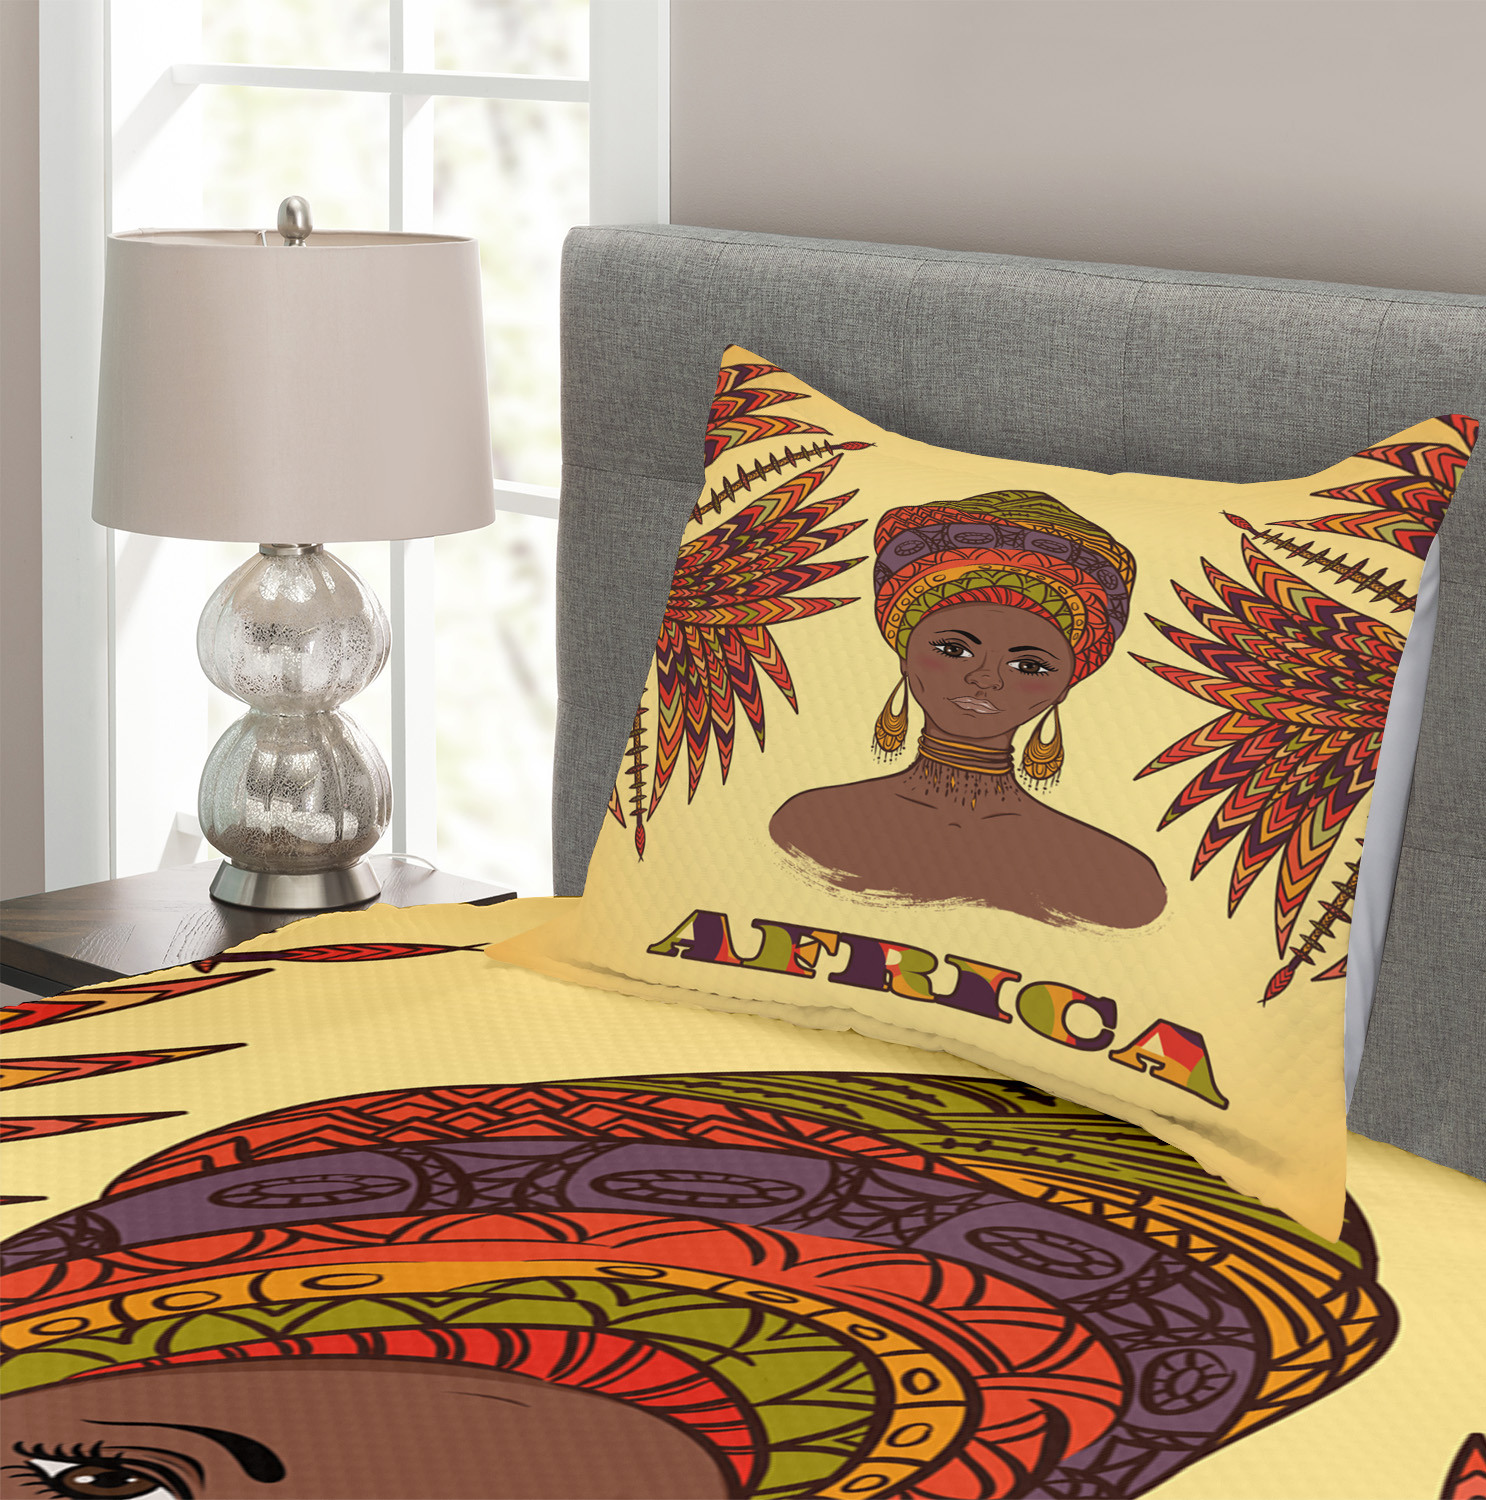 Turban Palms Cultural Print African Quilted Bedspread /& Pillow Shams Set